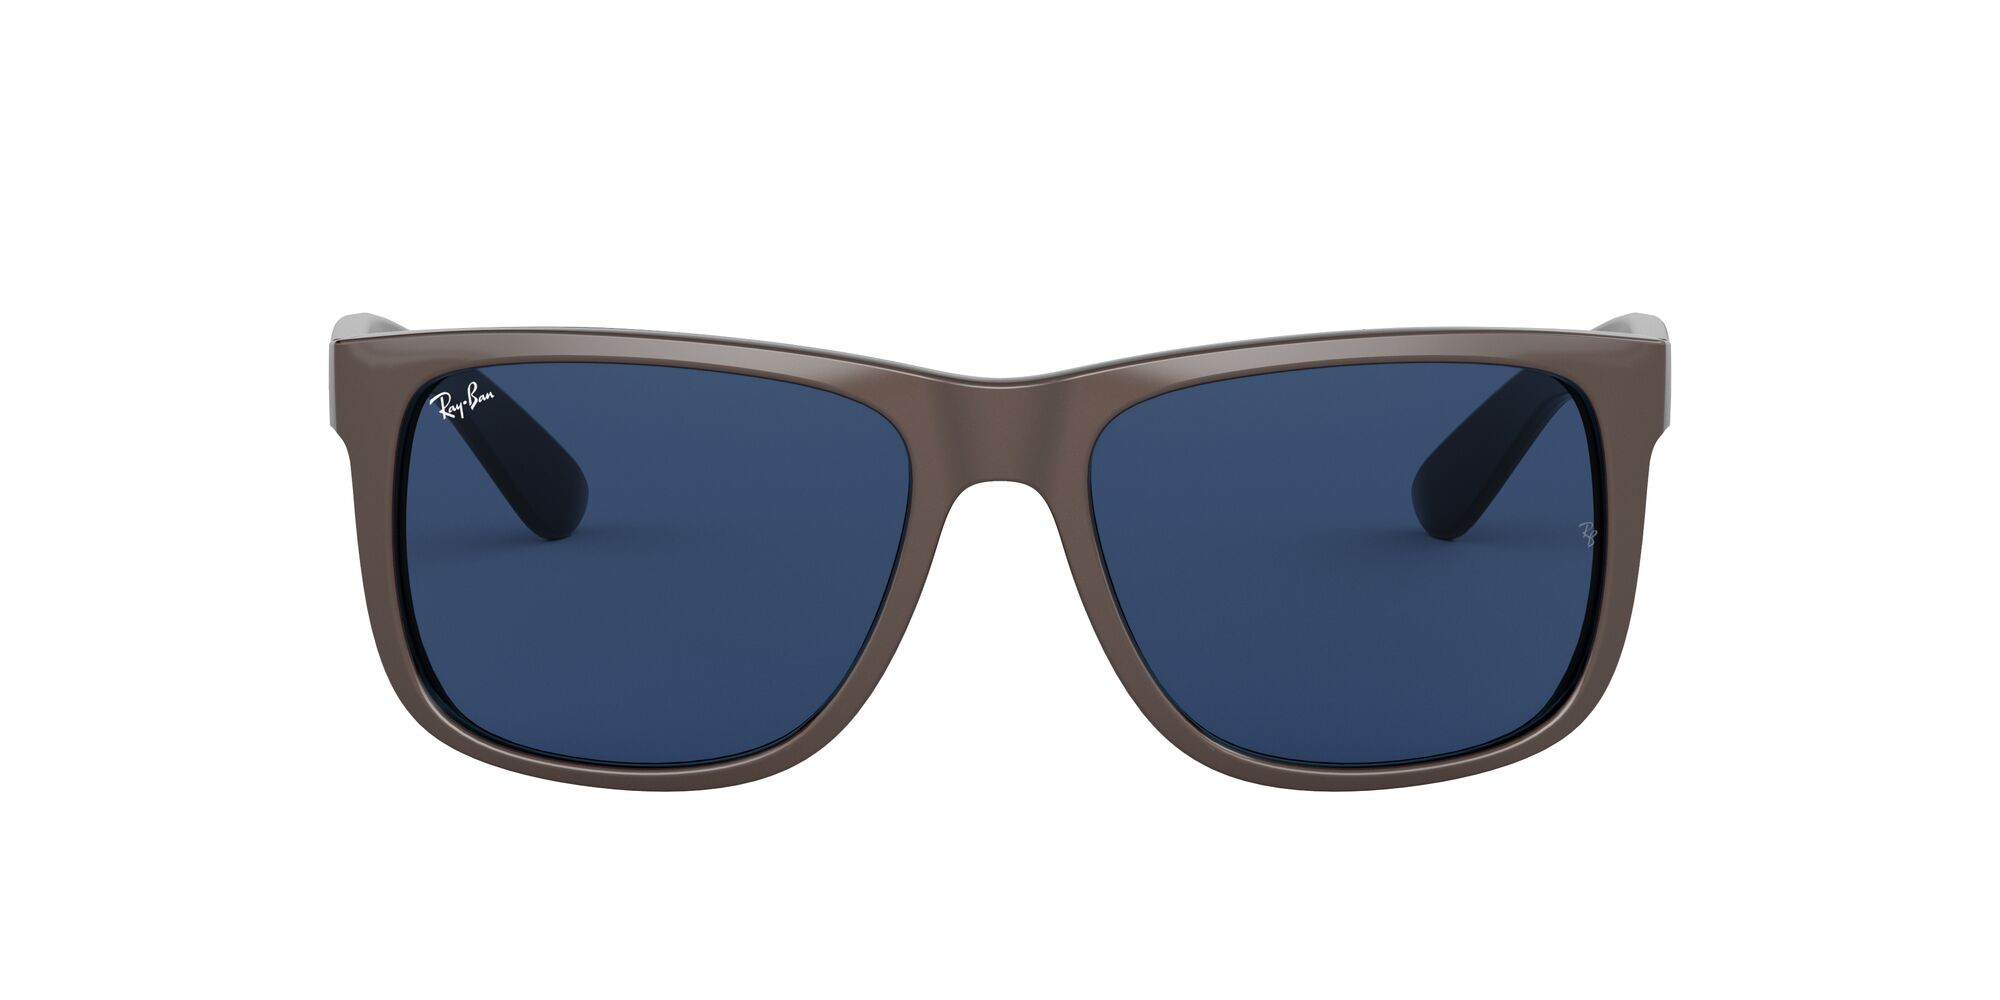 Front Ray-Ban Ray-Ban 0RB4165 647080 53/16 Bruin, Zilver/Blauw